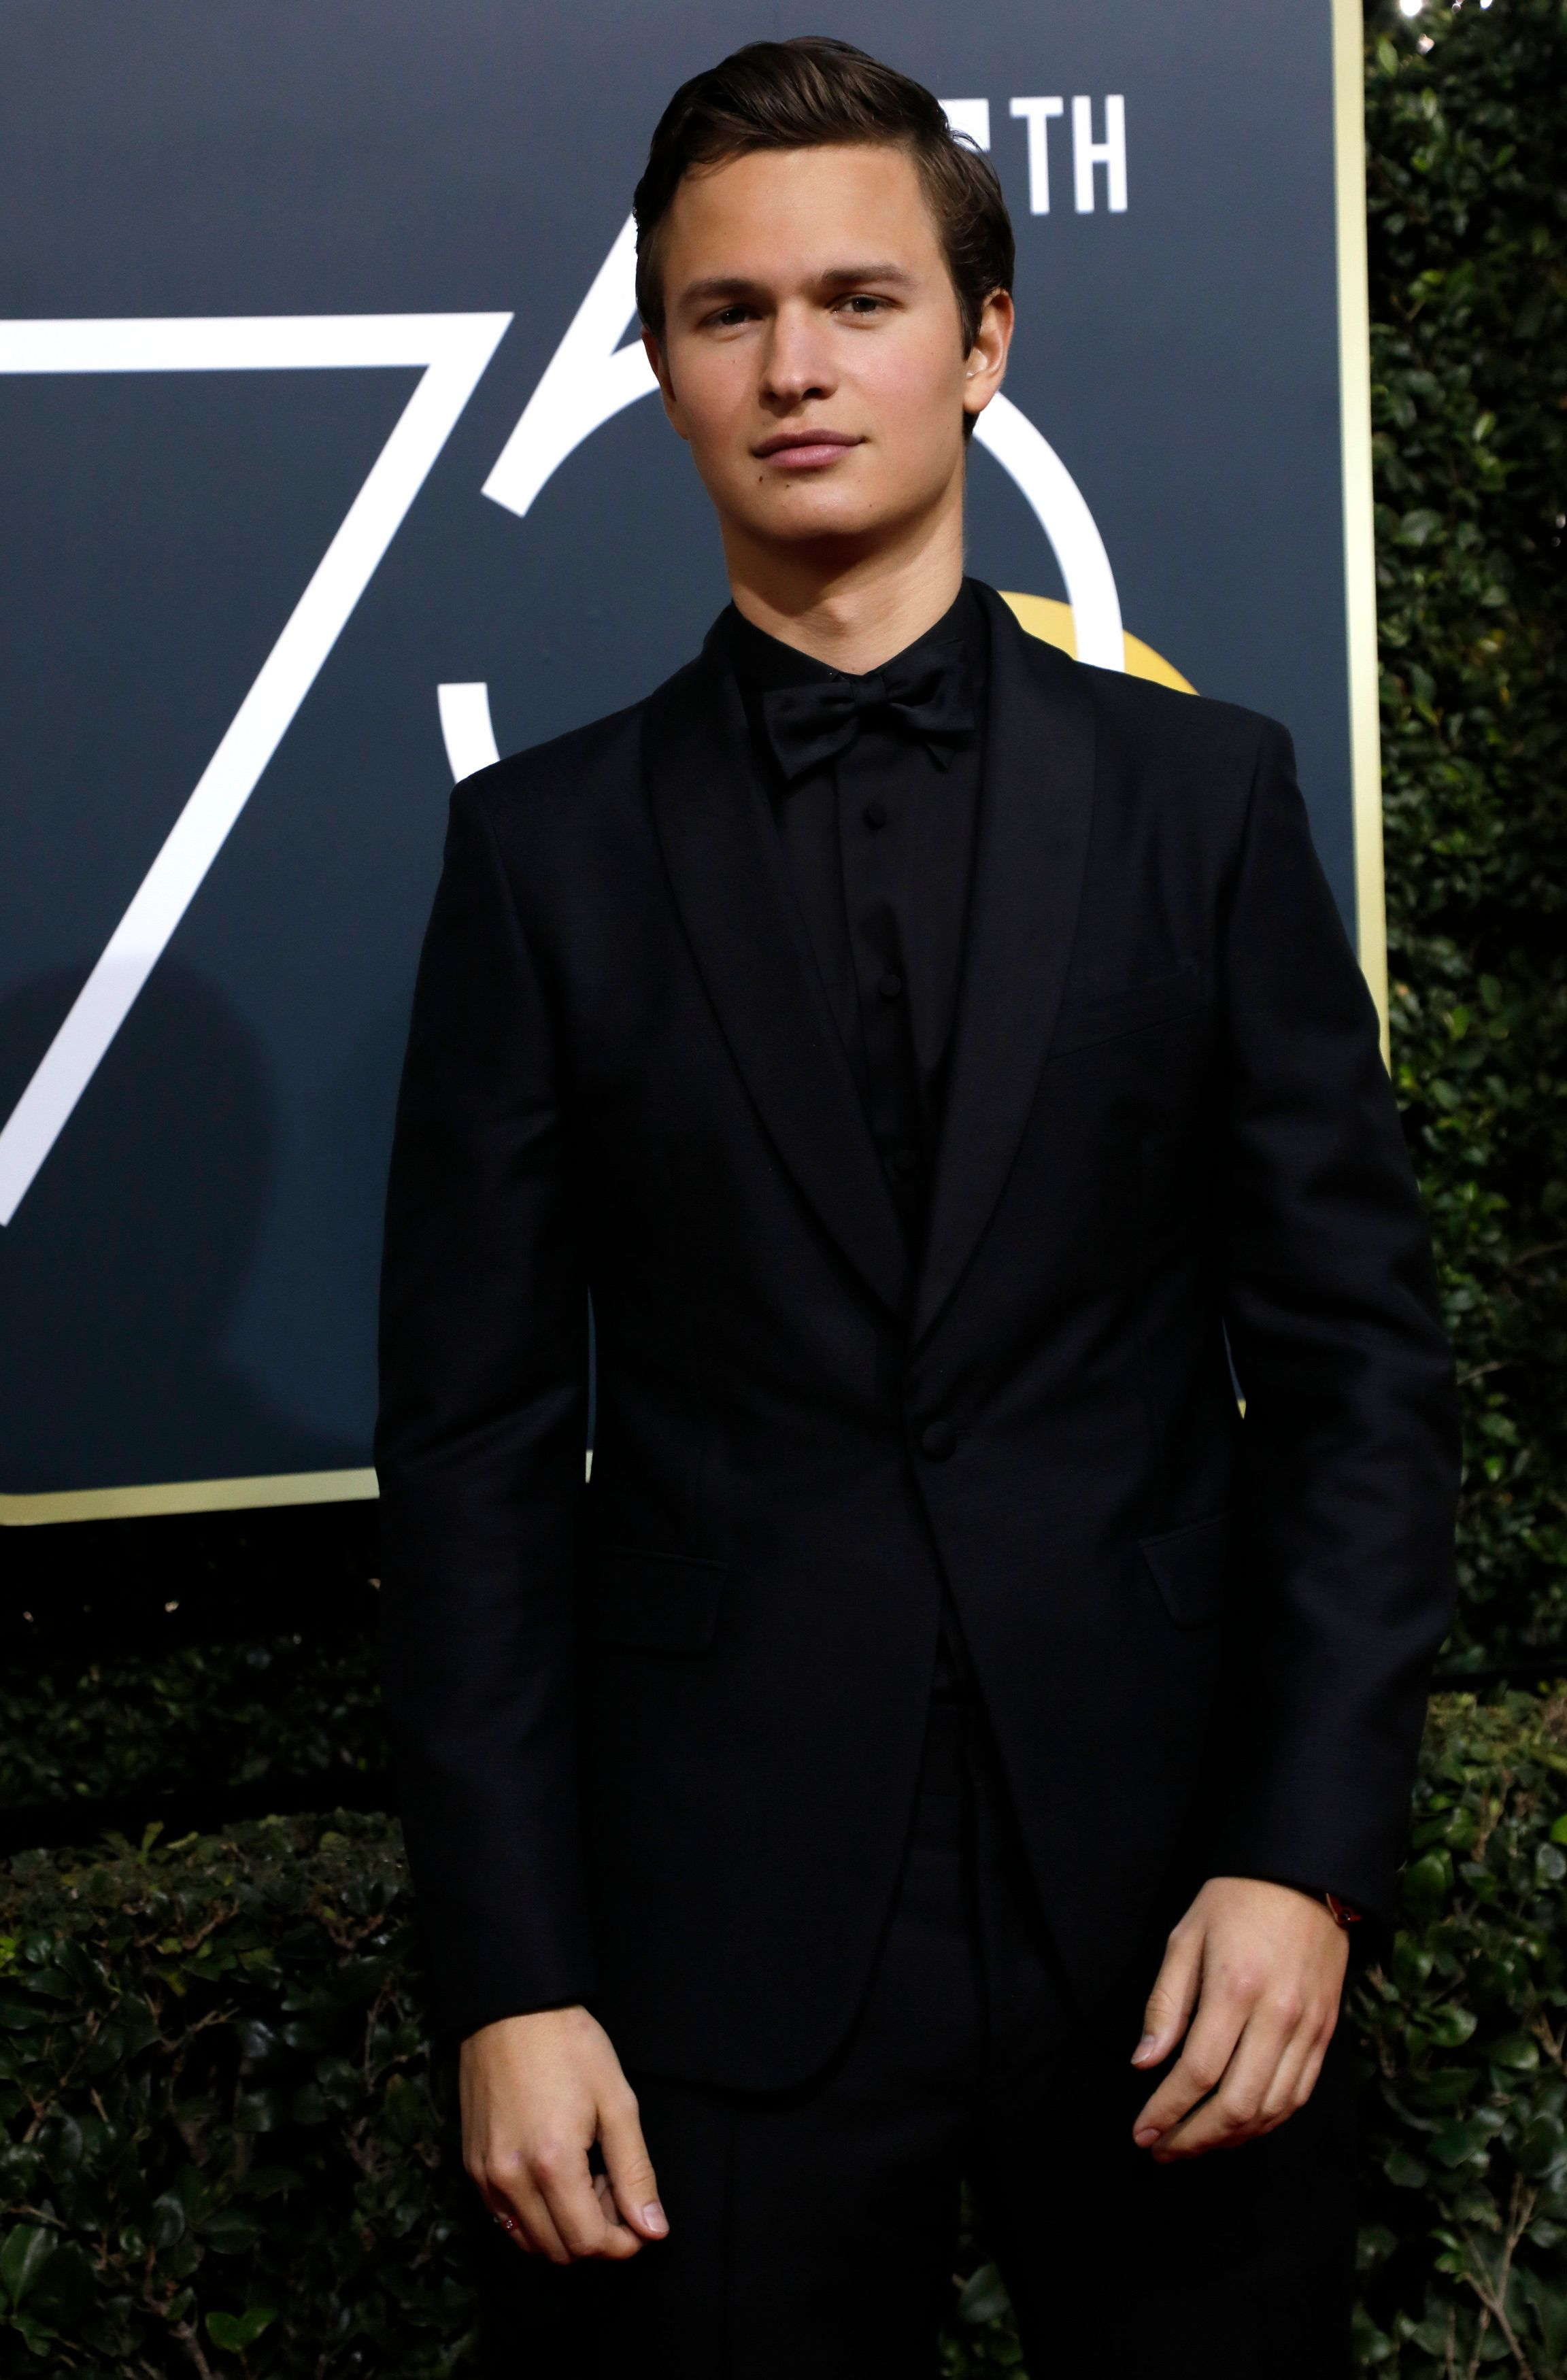 75th Golden Globe Awards – Arrivals – Beverly Hills, California, U.S., 07/01/2018 – Actor Ansel Elgort. REUTERS/Mario Anzuoni